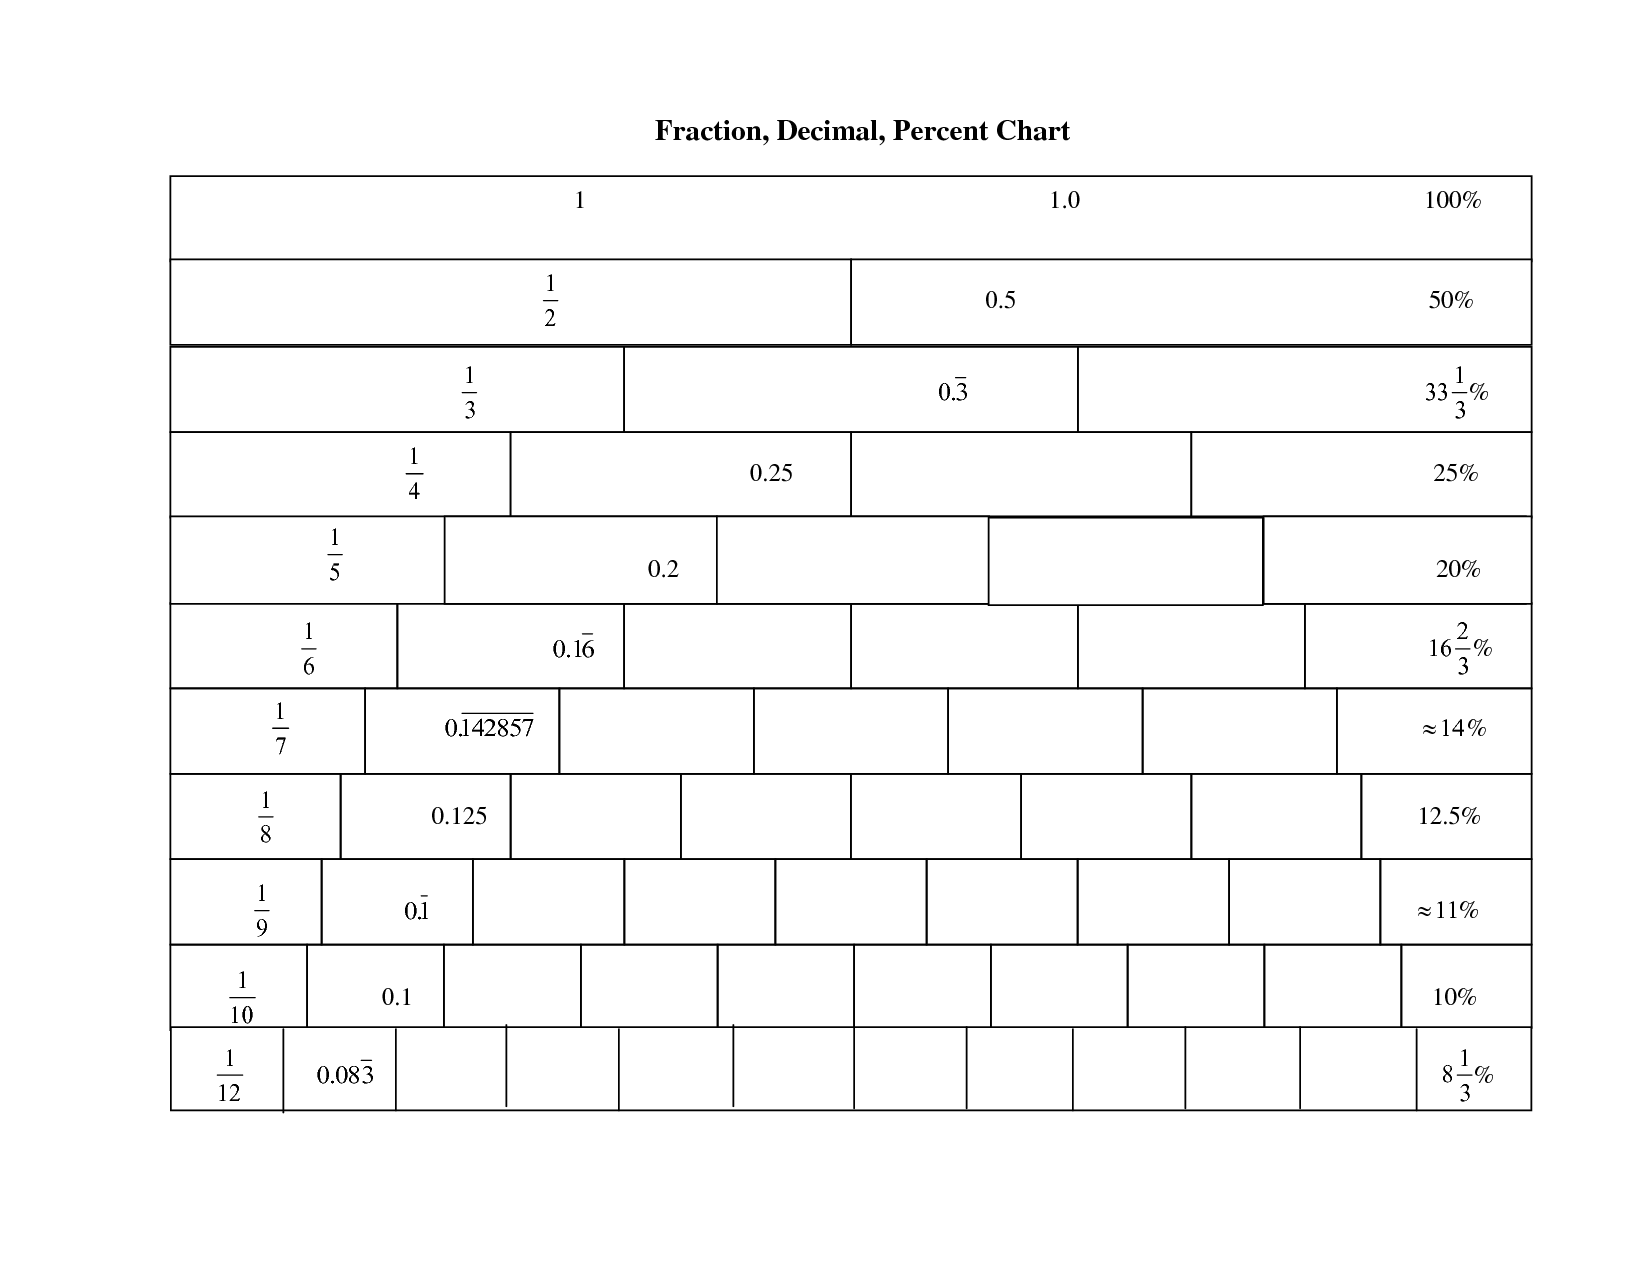 worksheet Fractions Percents And Decimals Worksheet fraction decimal number line percent chart chart